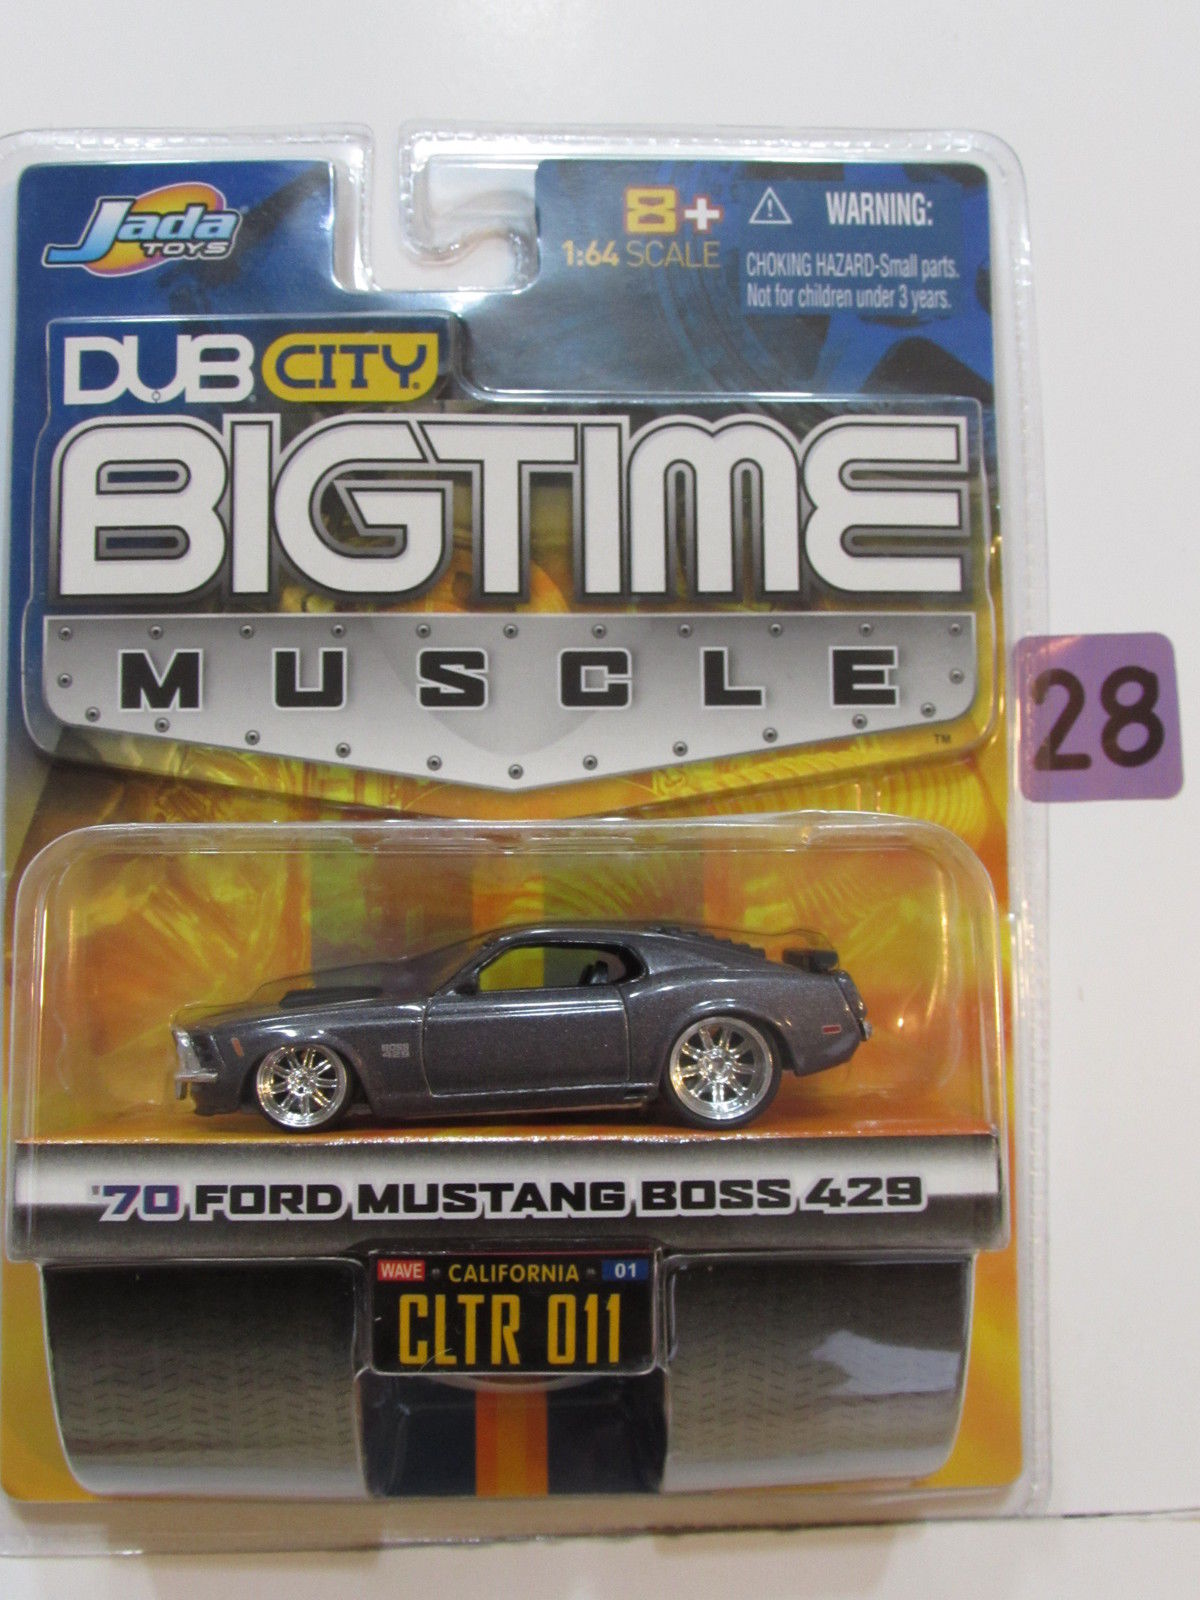 JADA DUB CITY BIGTIME MUSCLE '70 FORD MUSTANG BOSS 429 CLTR 011 GRAY